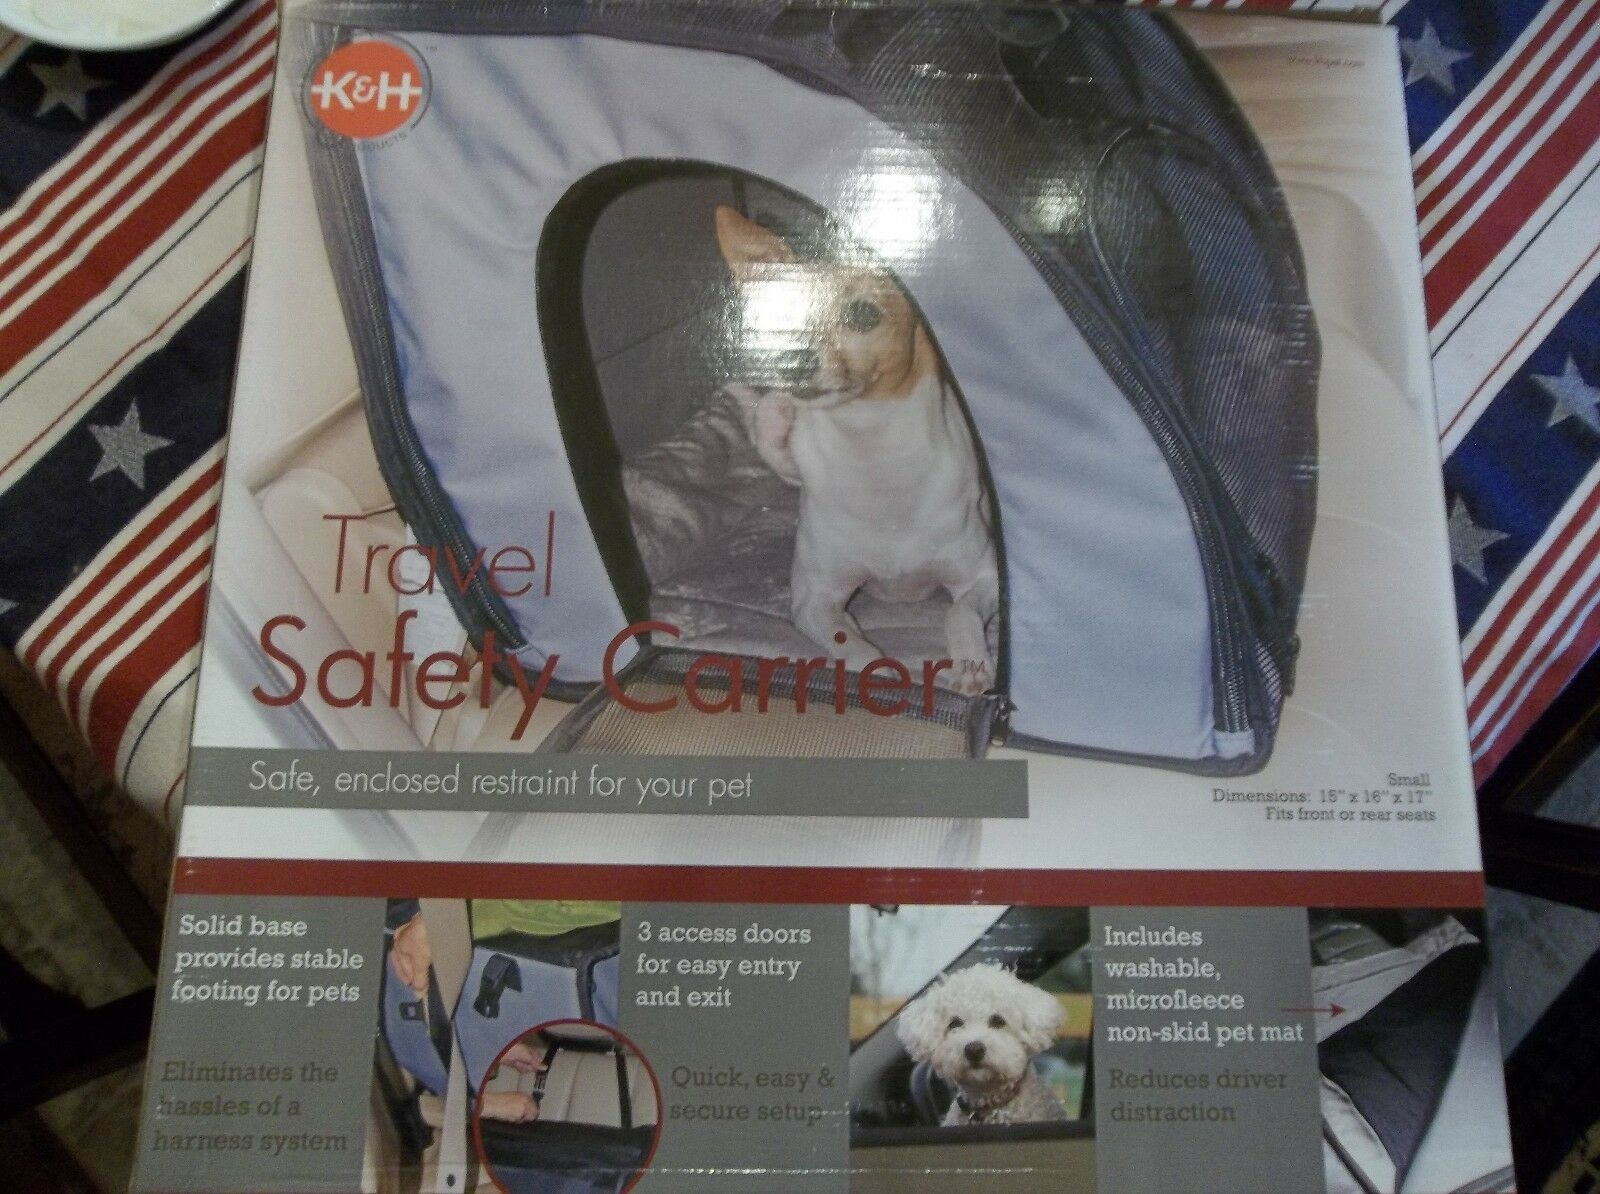 K & H Safe, Enclosed Restraint Pet Travel Safety Carrier for Small Pets NIB!